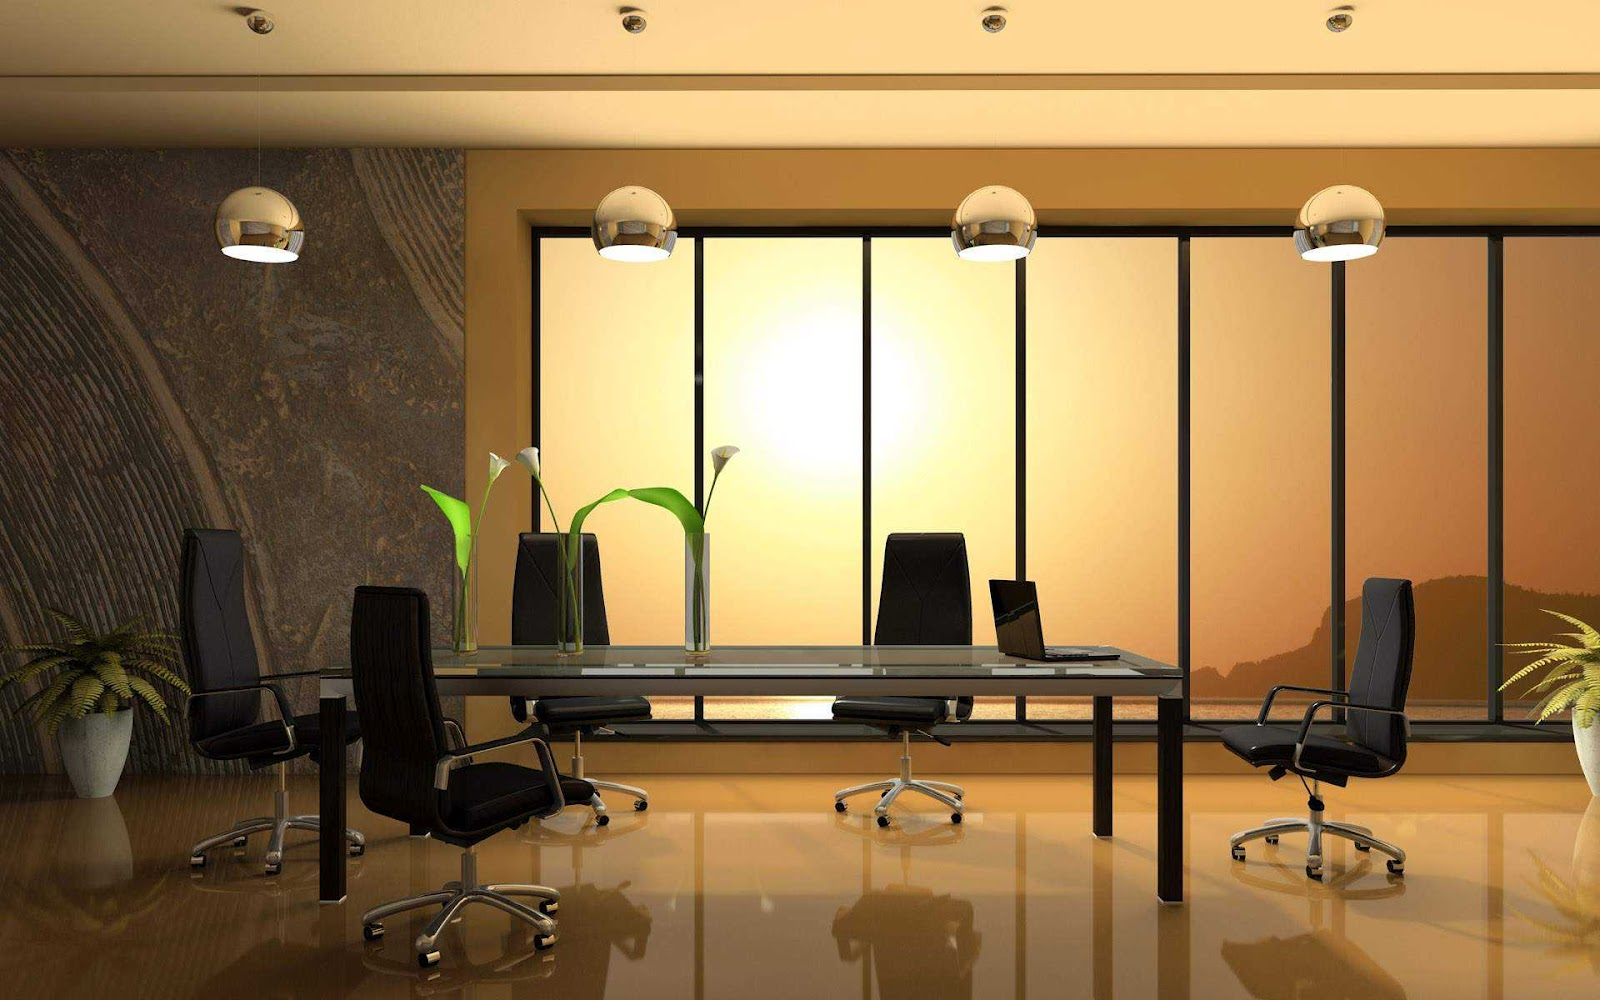 Luxury office office furniture design modern home office for Office interior design ideas